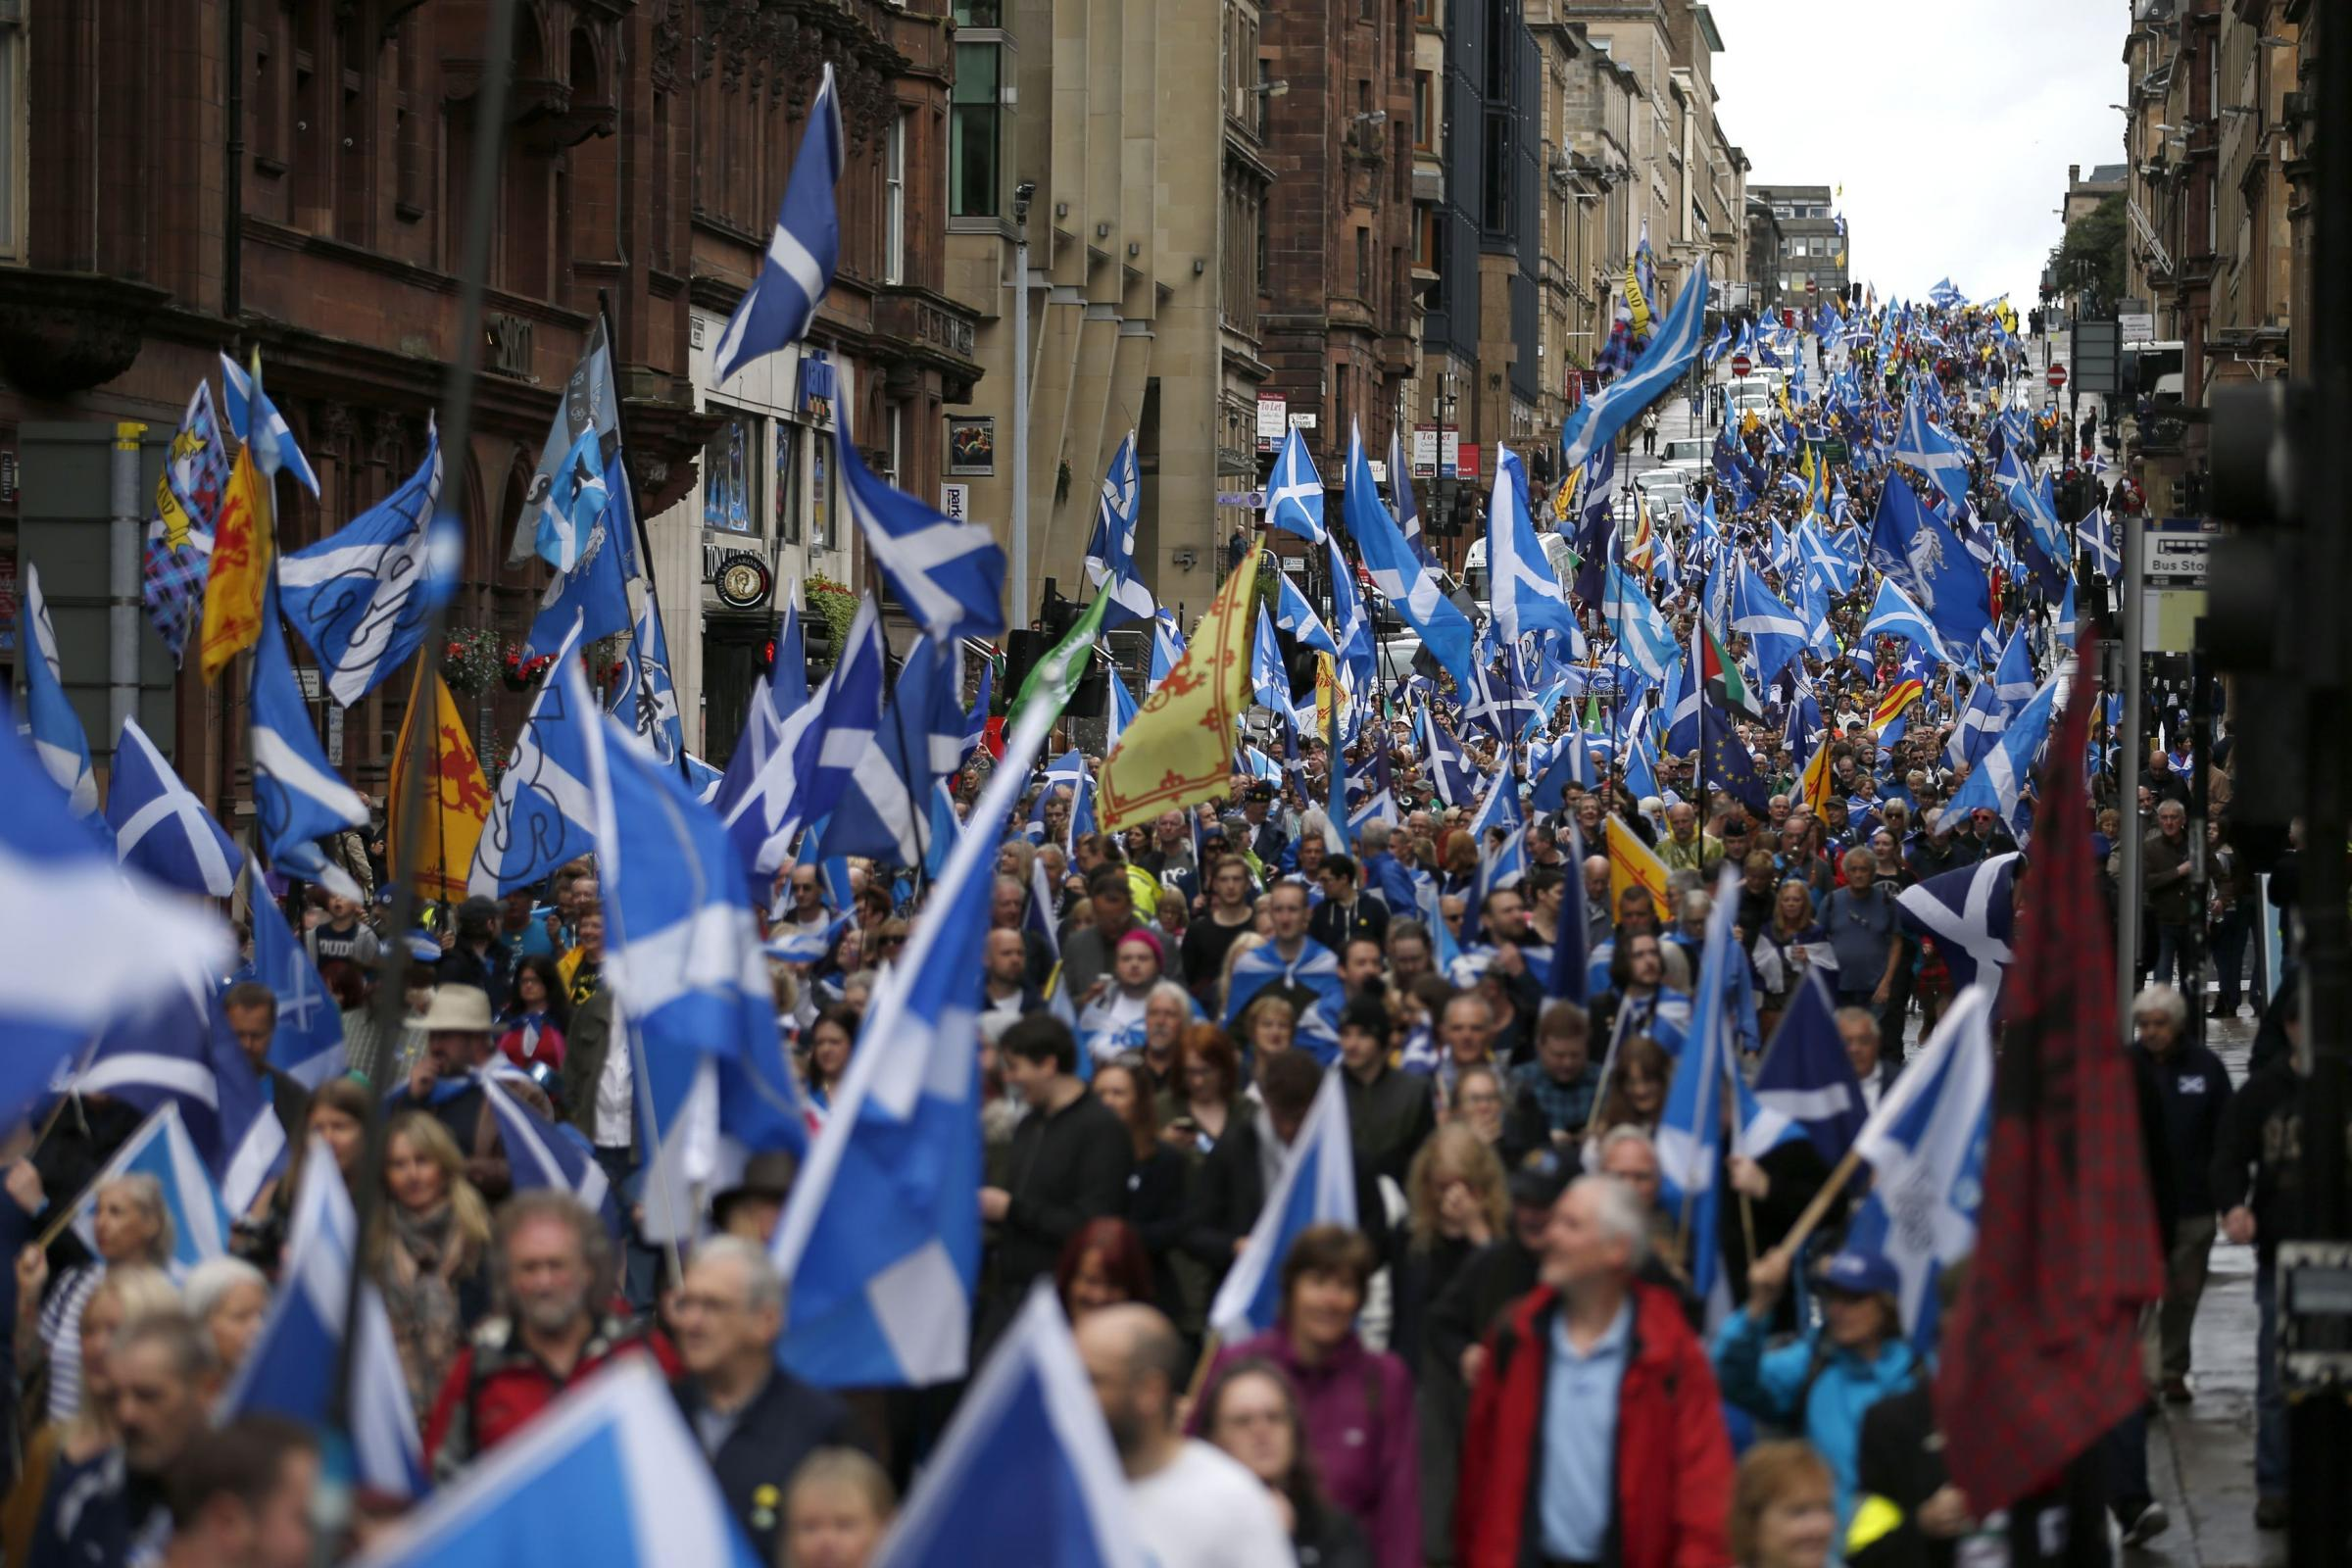 All Under One Banner's last march through Glasgow led to no arrests